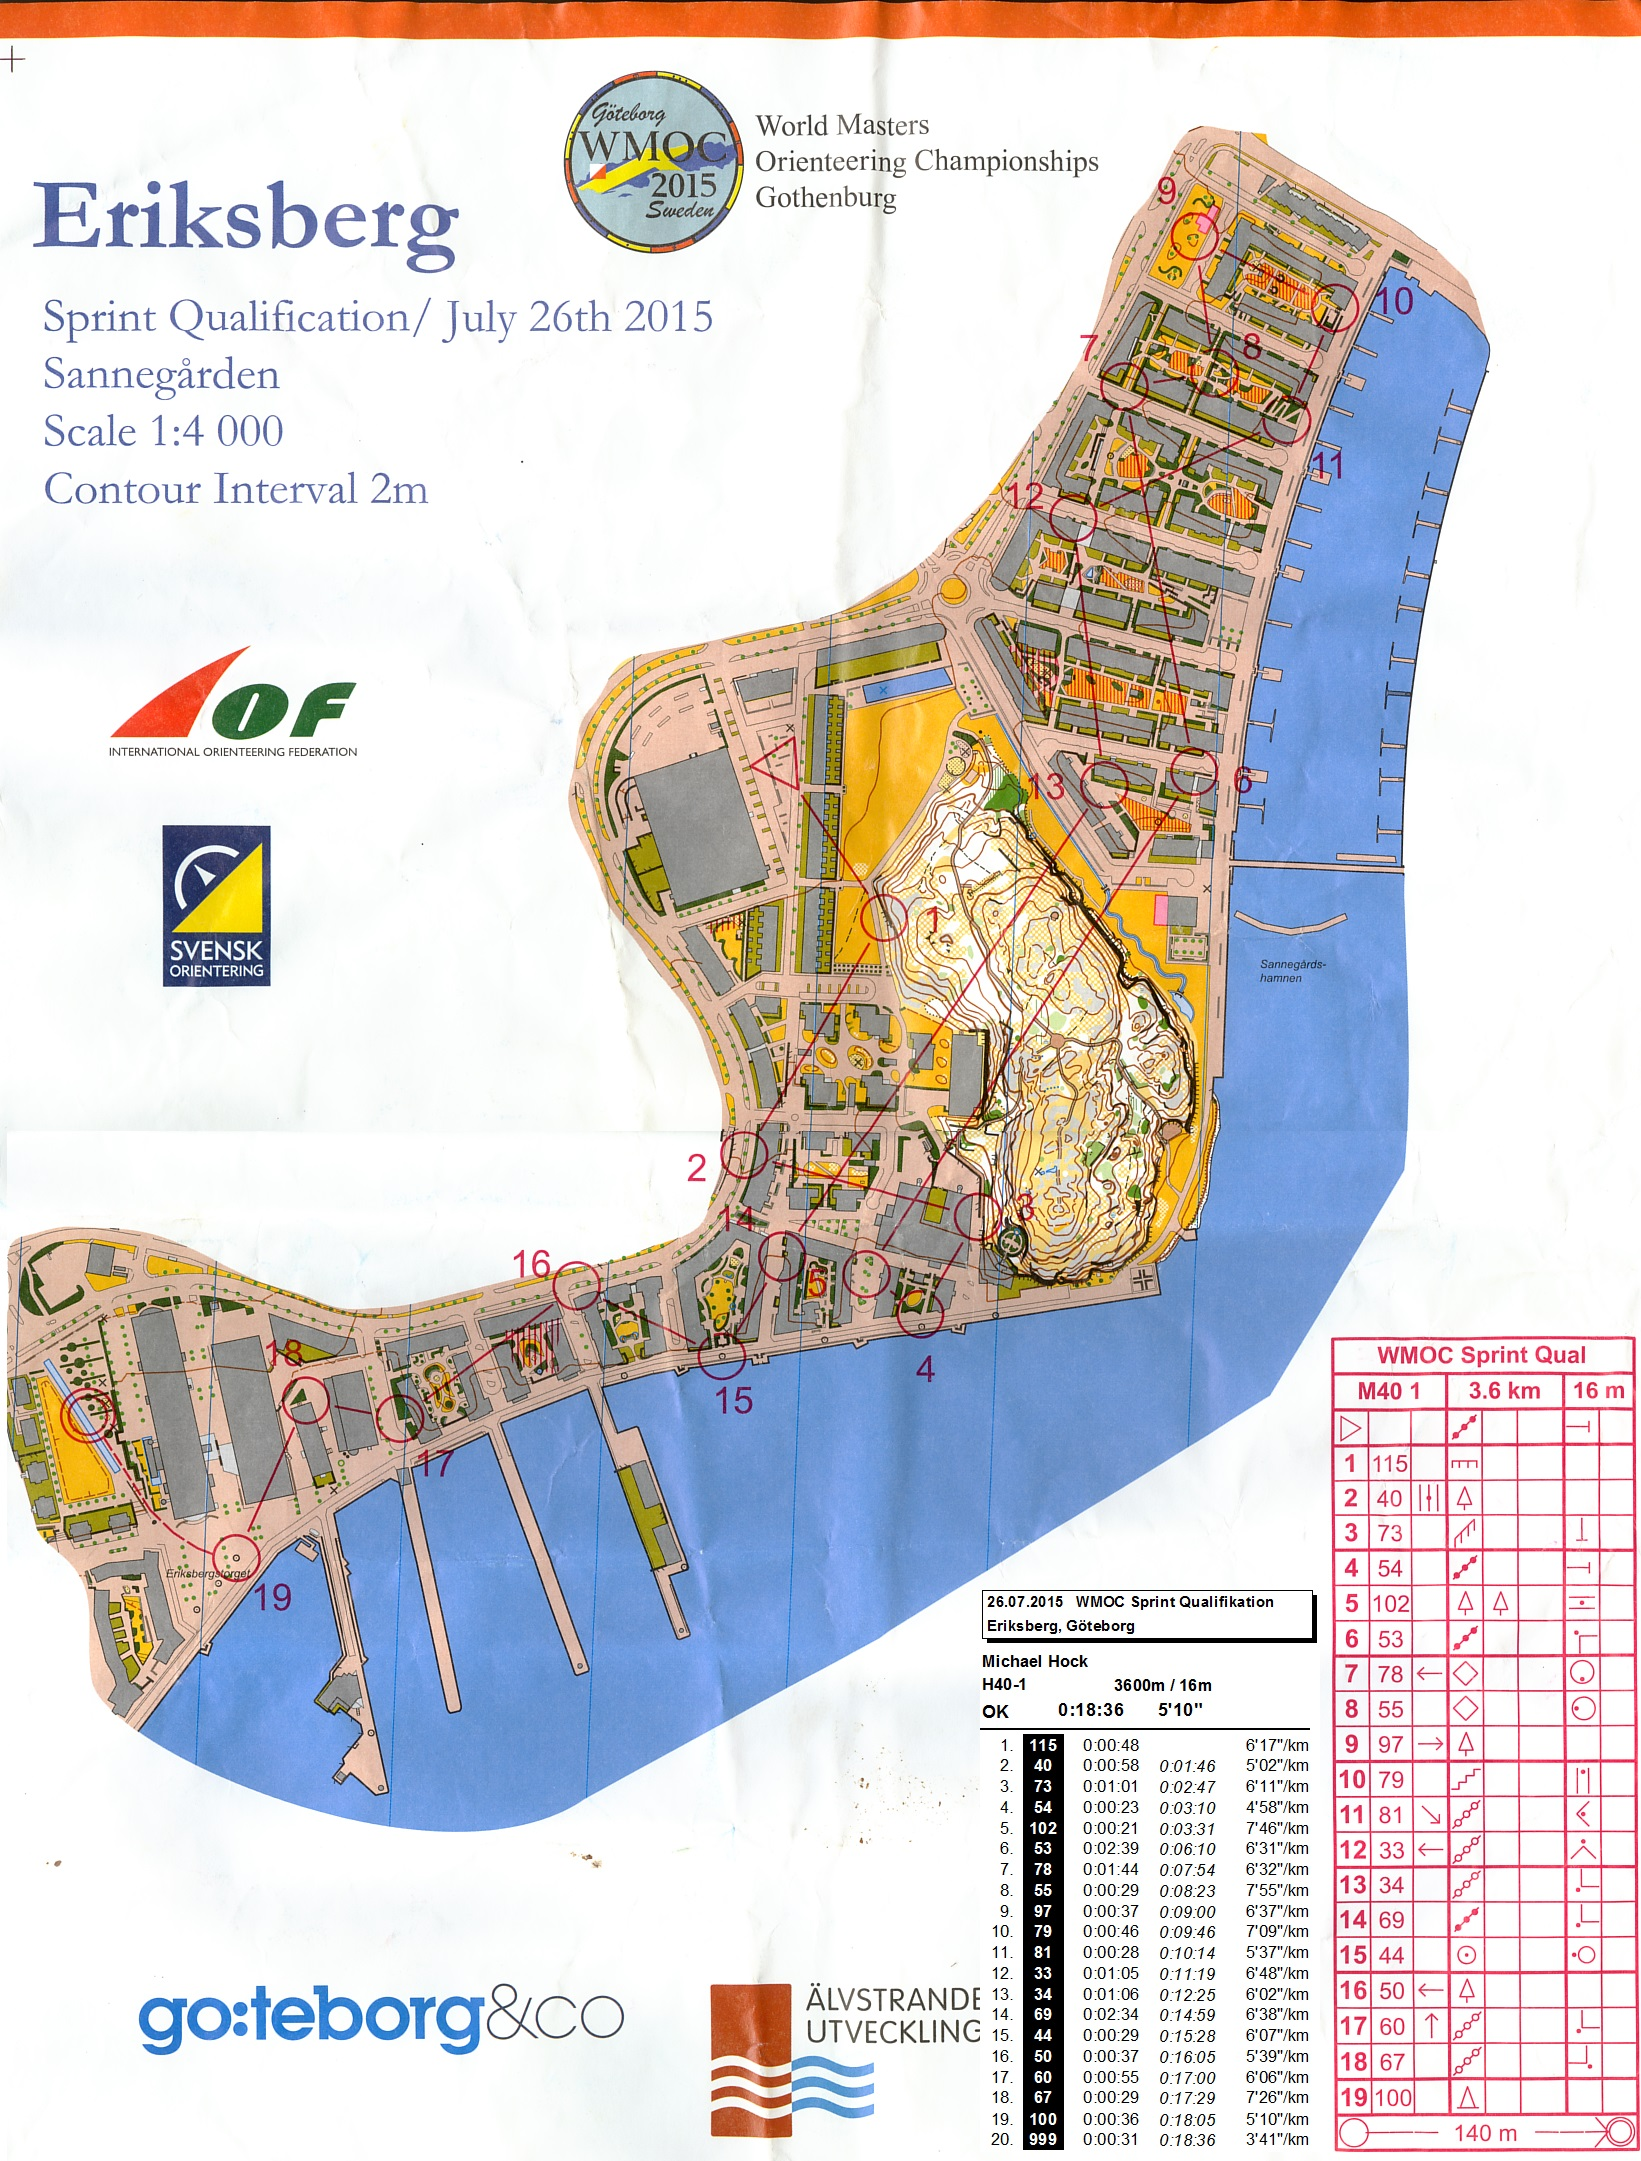 WMOC 2015 Sprint Qualification (26.07.2015)